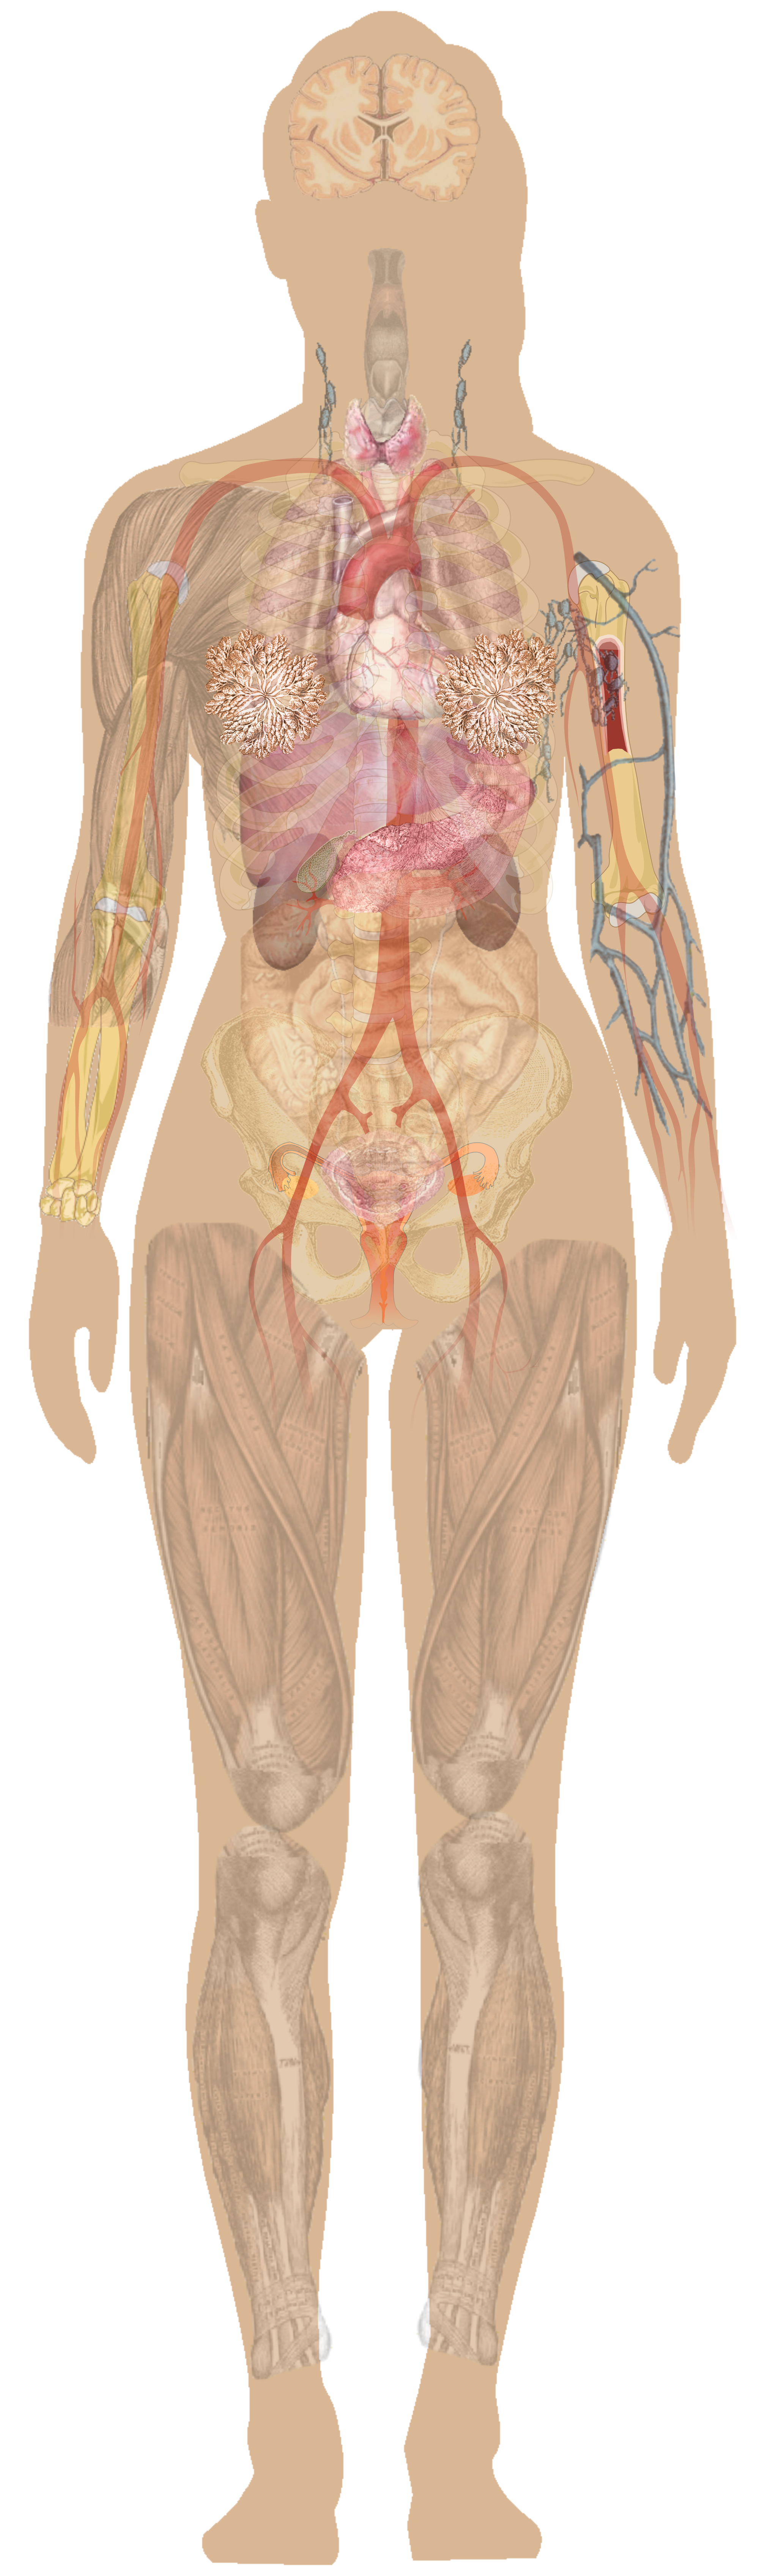 Chest anatomy diagram human. Xray clipart female